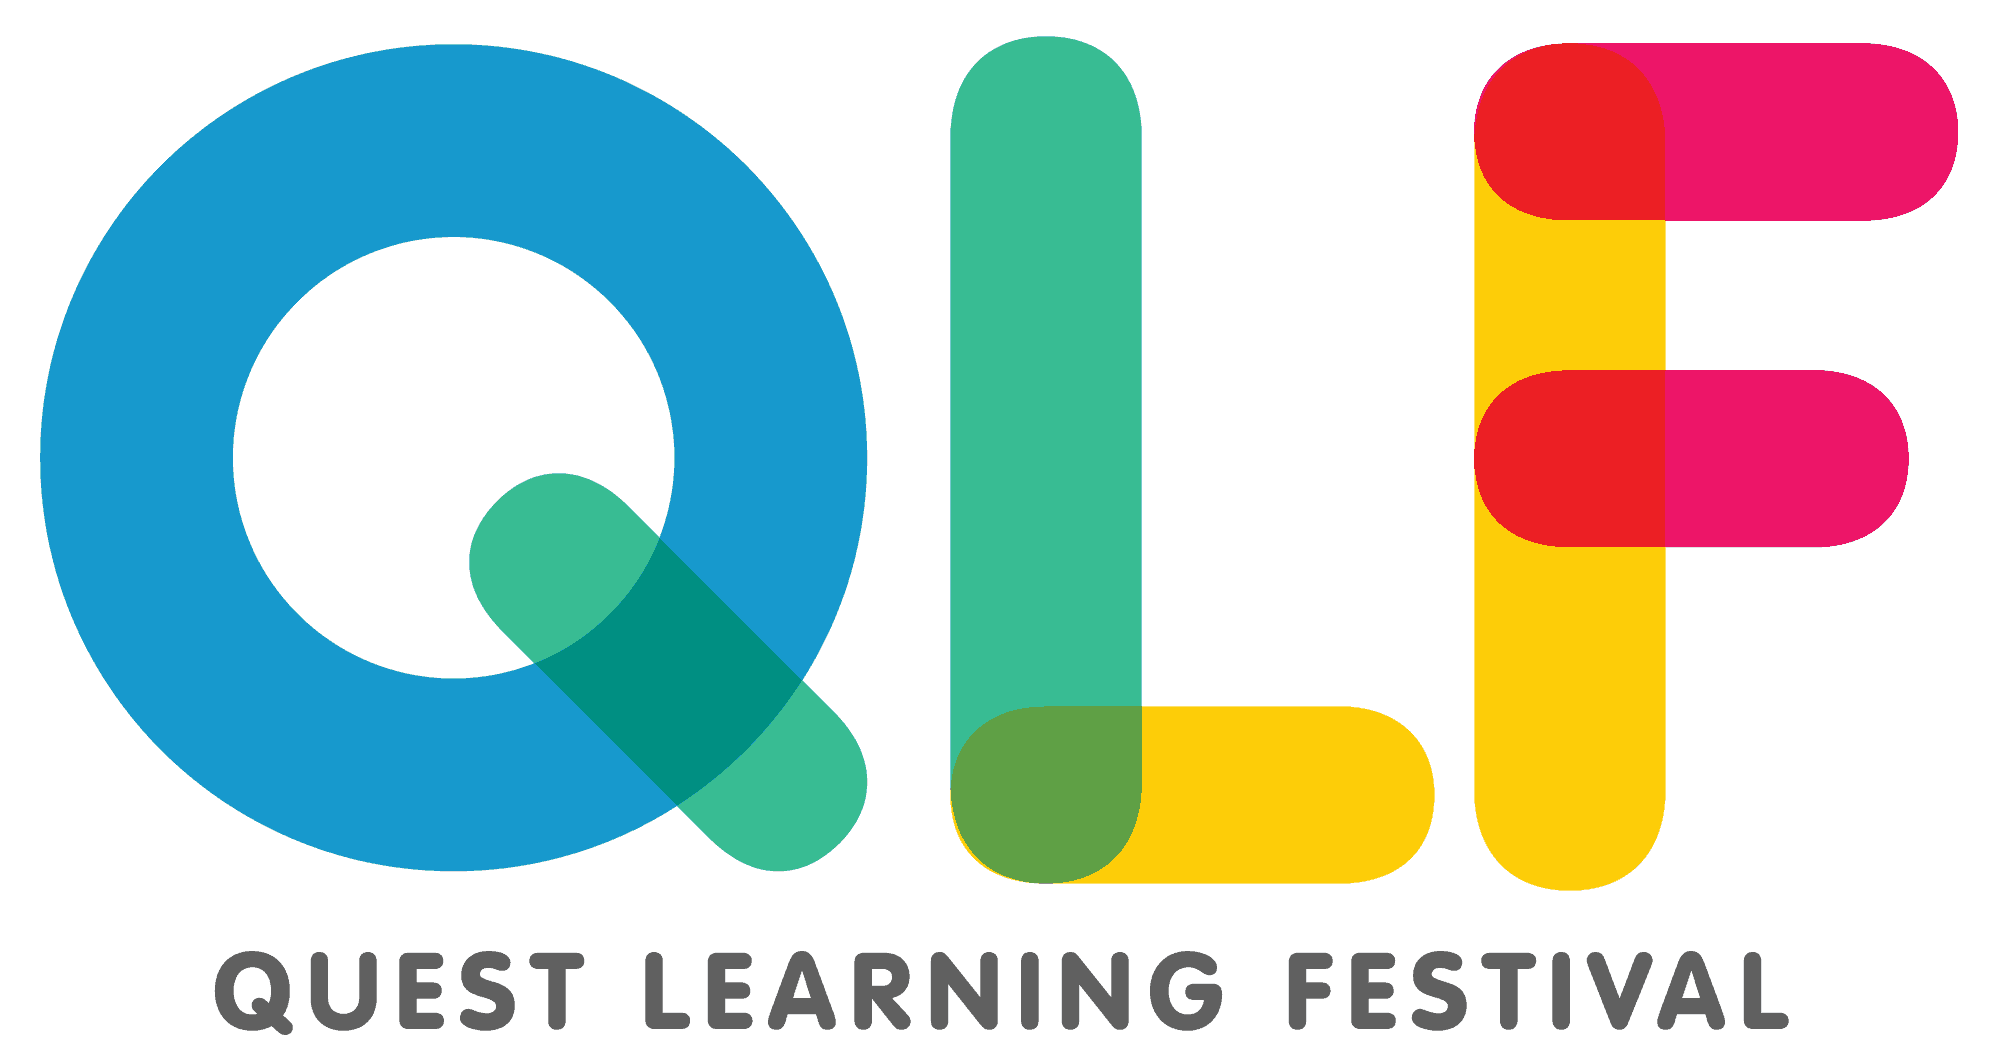 Quest Learning Festival